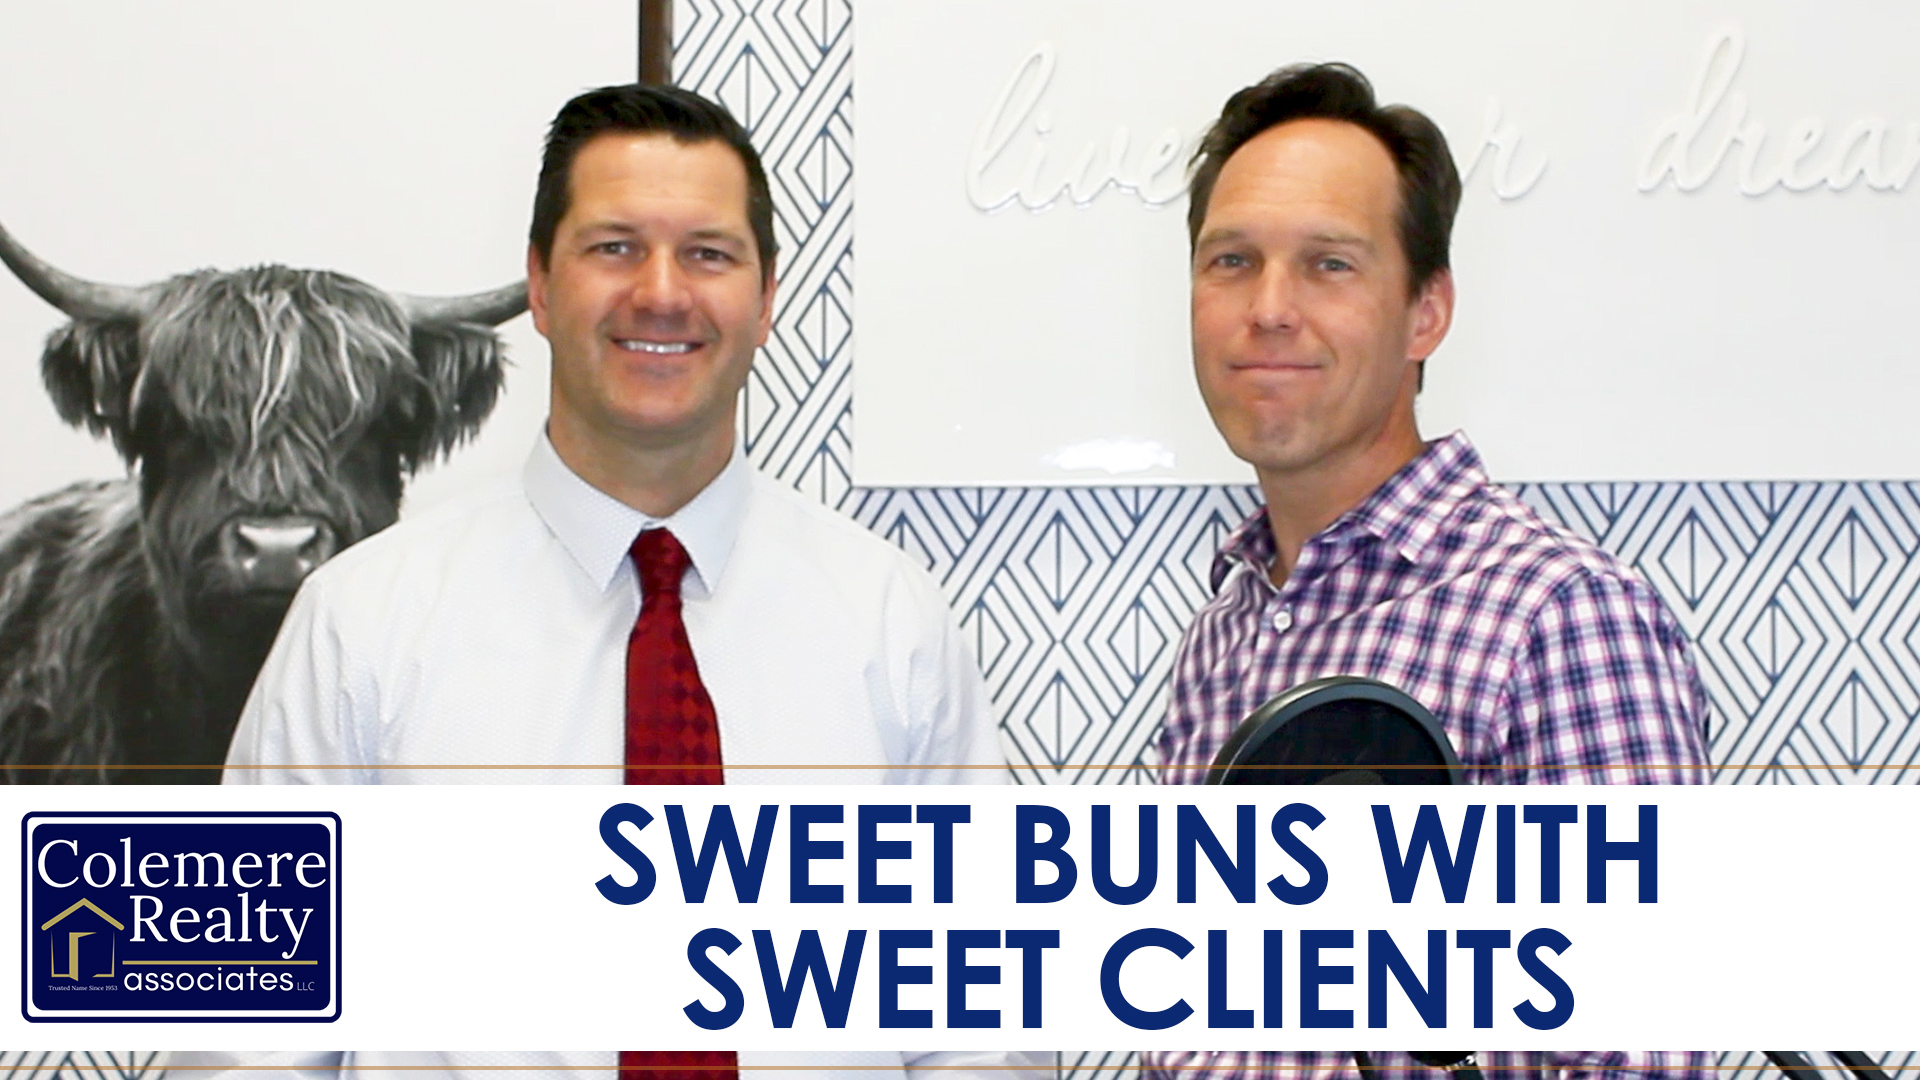 Sweet Buns For Sweet Clients March 25 & 26, 2-6